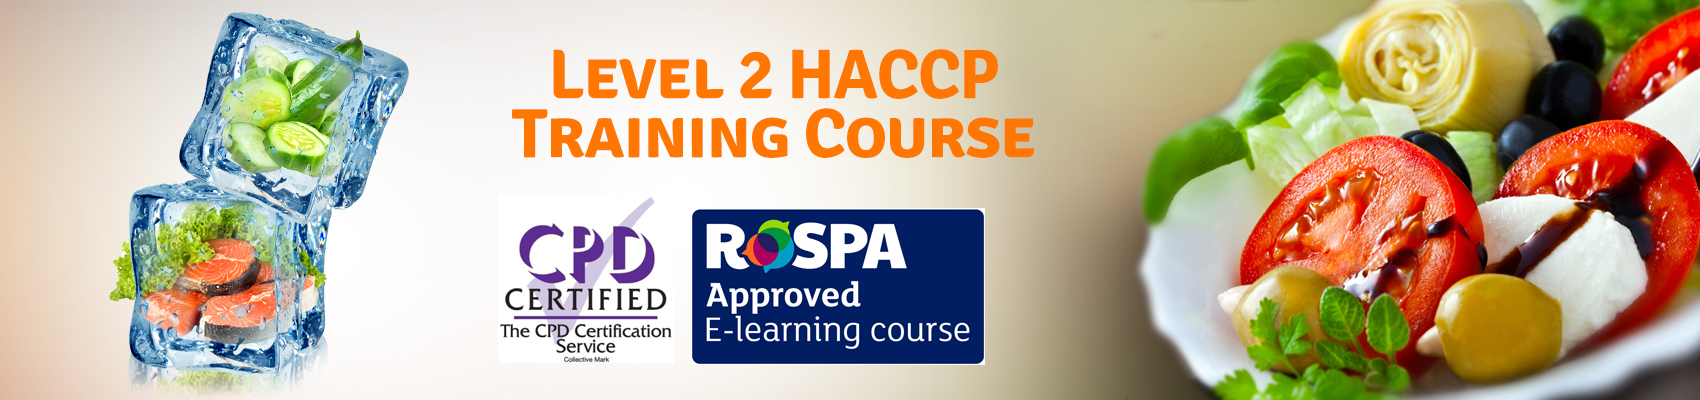 Level 2 HACCP Training Course